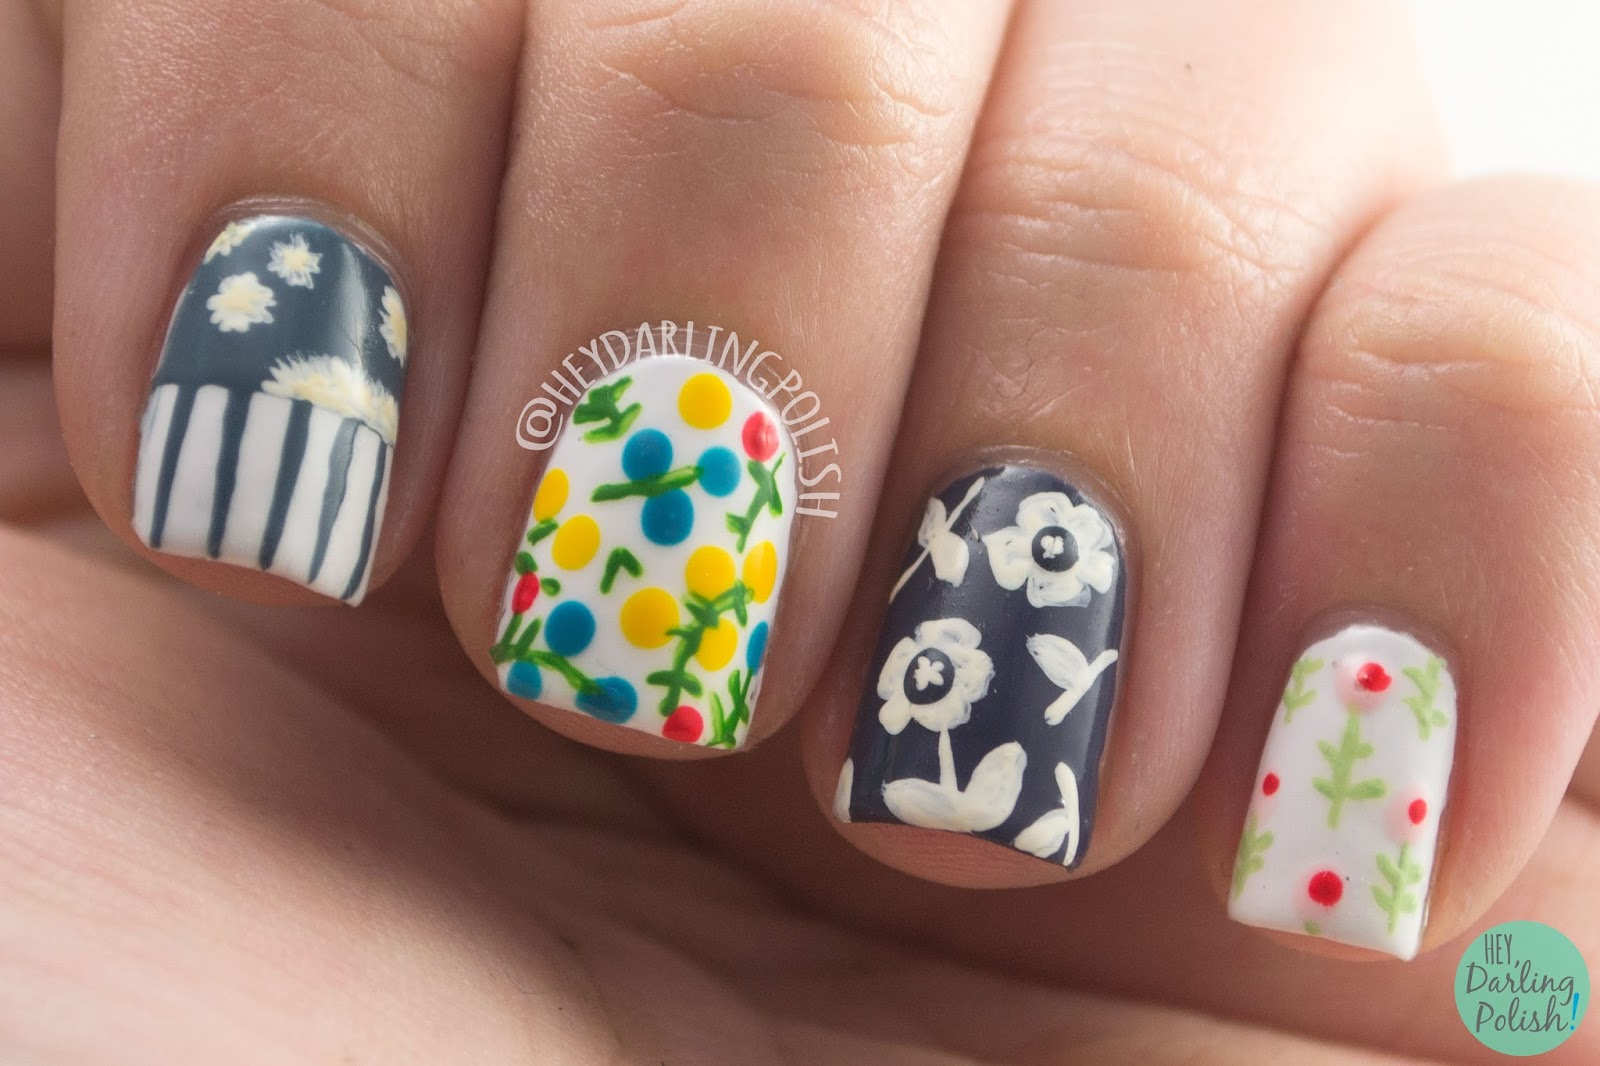 nails, nail art, nail polish, floral, flowers, hey darling polish, tea party, the nail challenge collaborative,